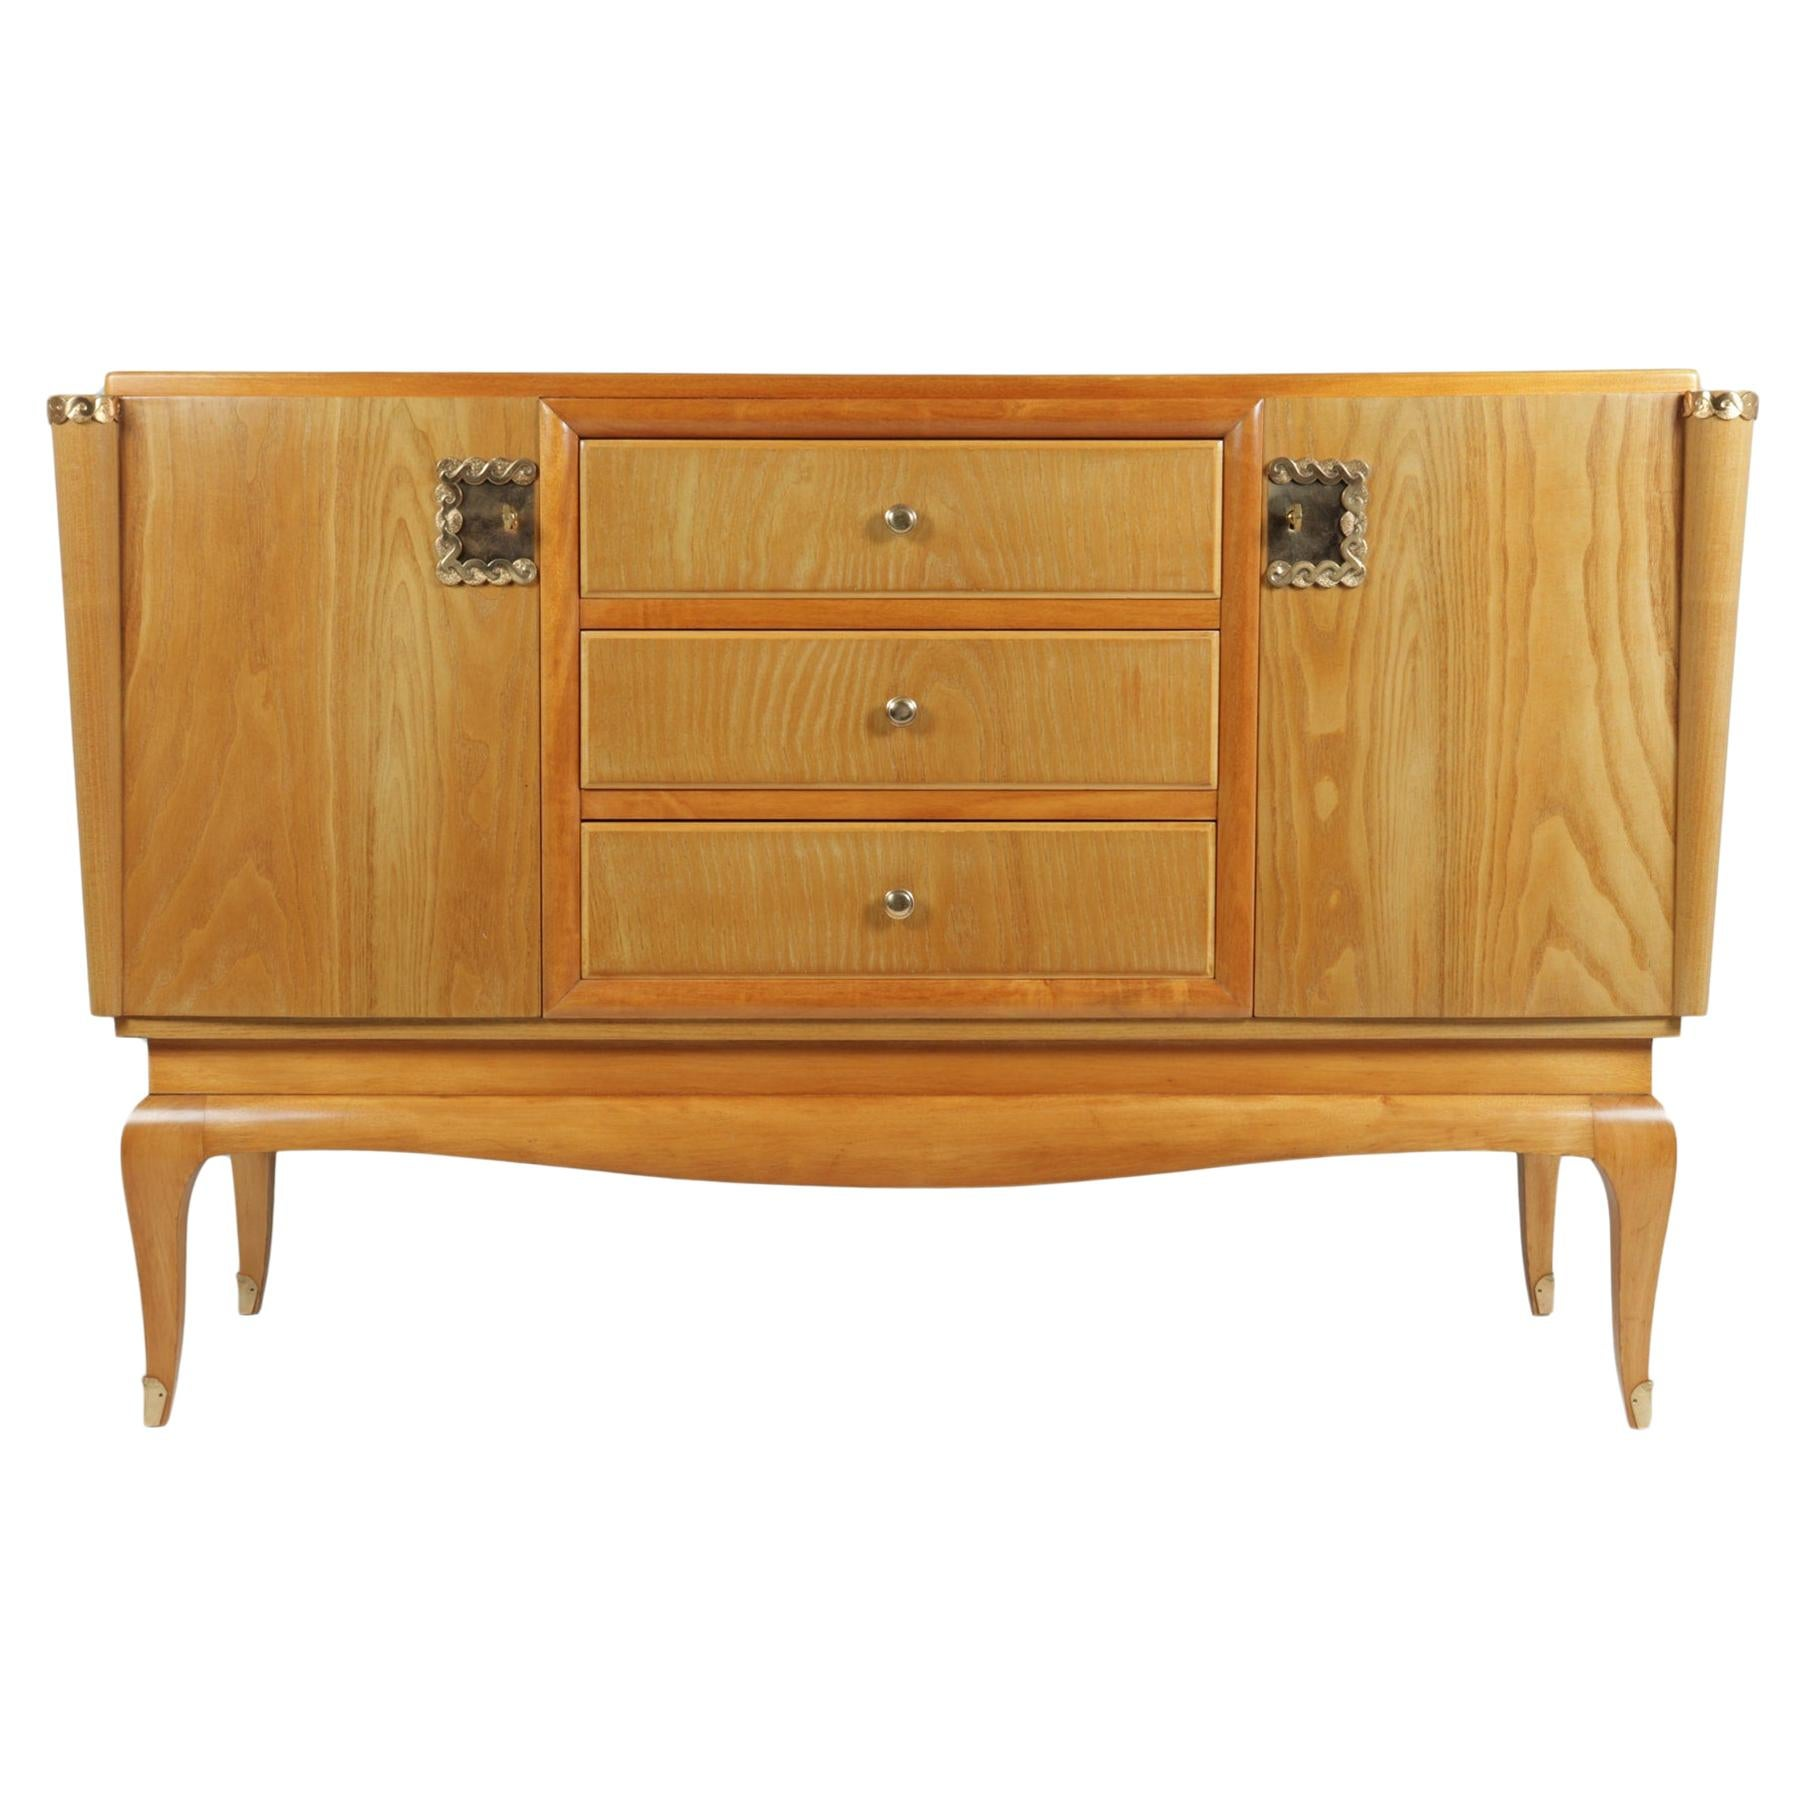 French Art Deco Sideboard in Cherry